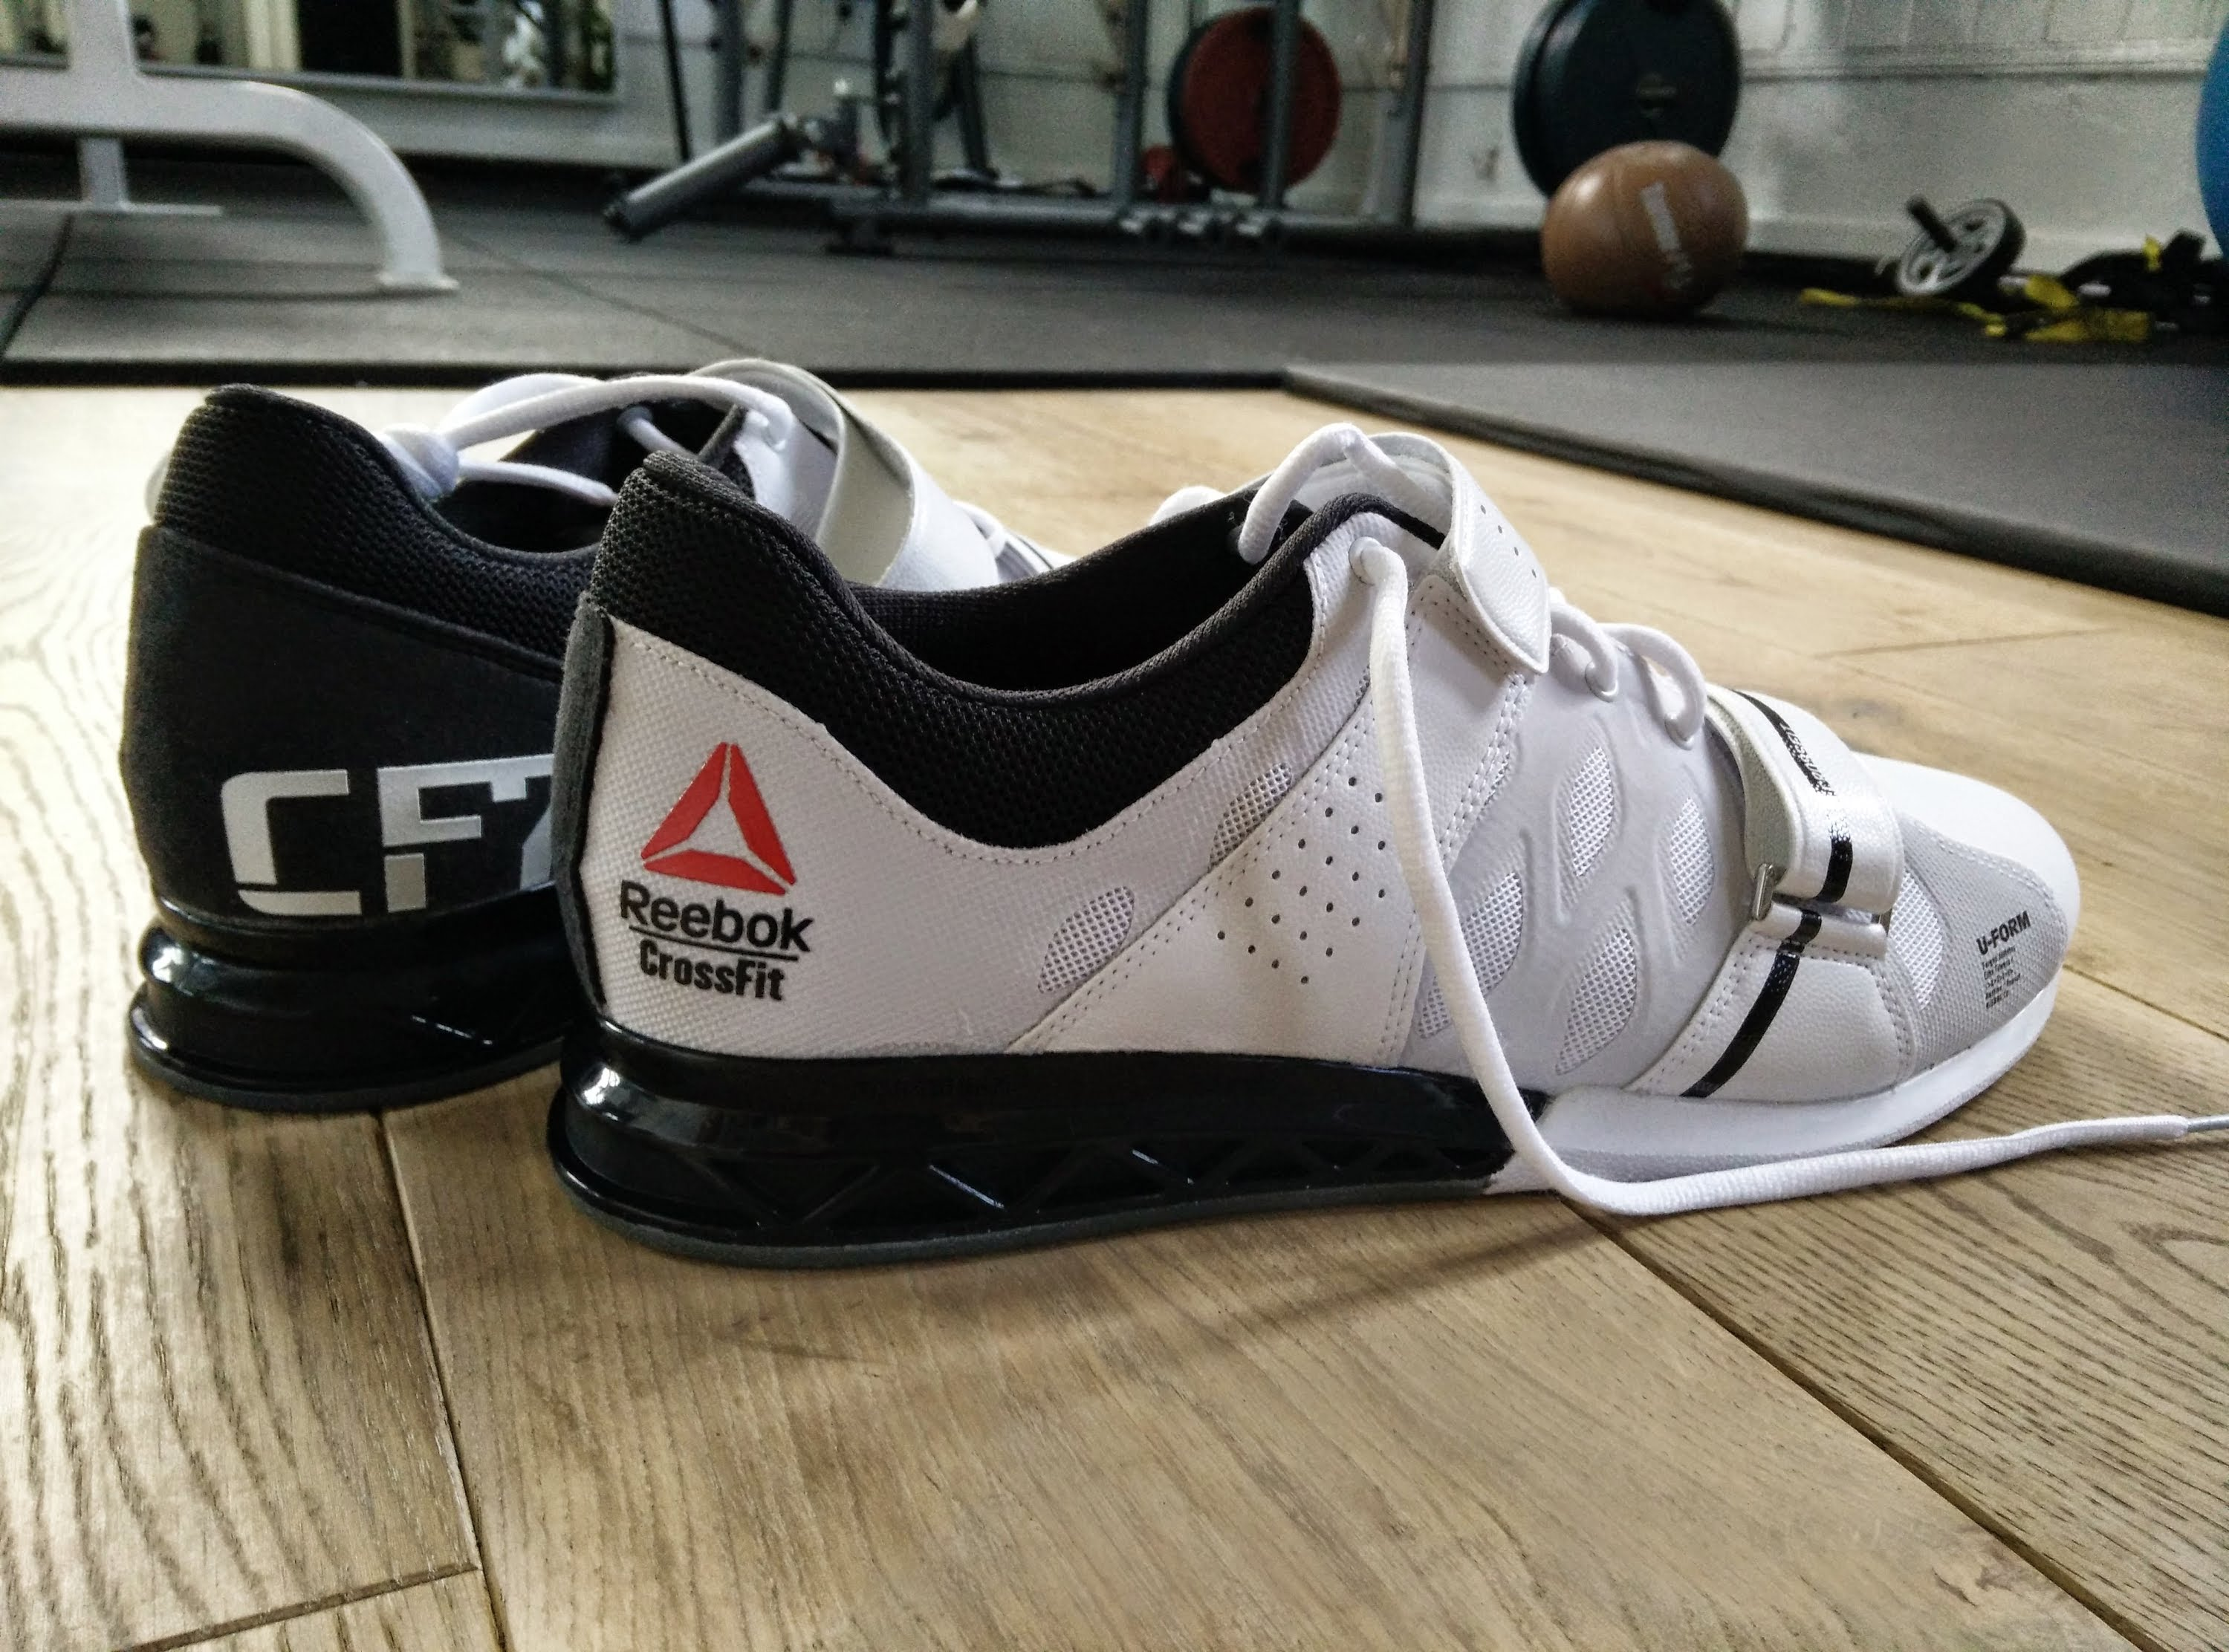 Reebok CrossFit Lifter heel Plus 2.0